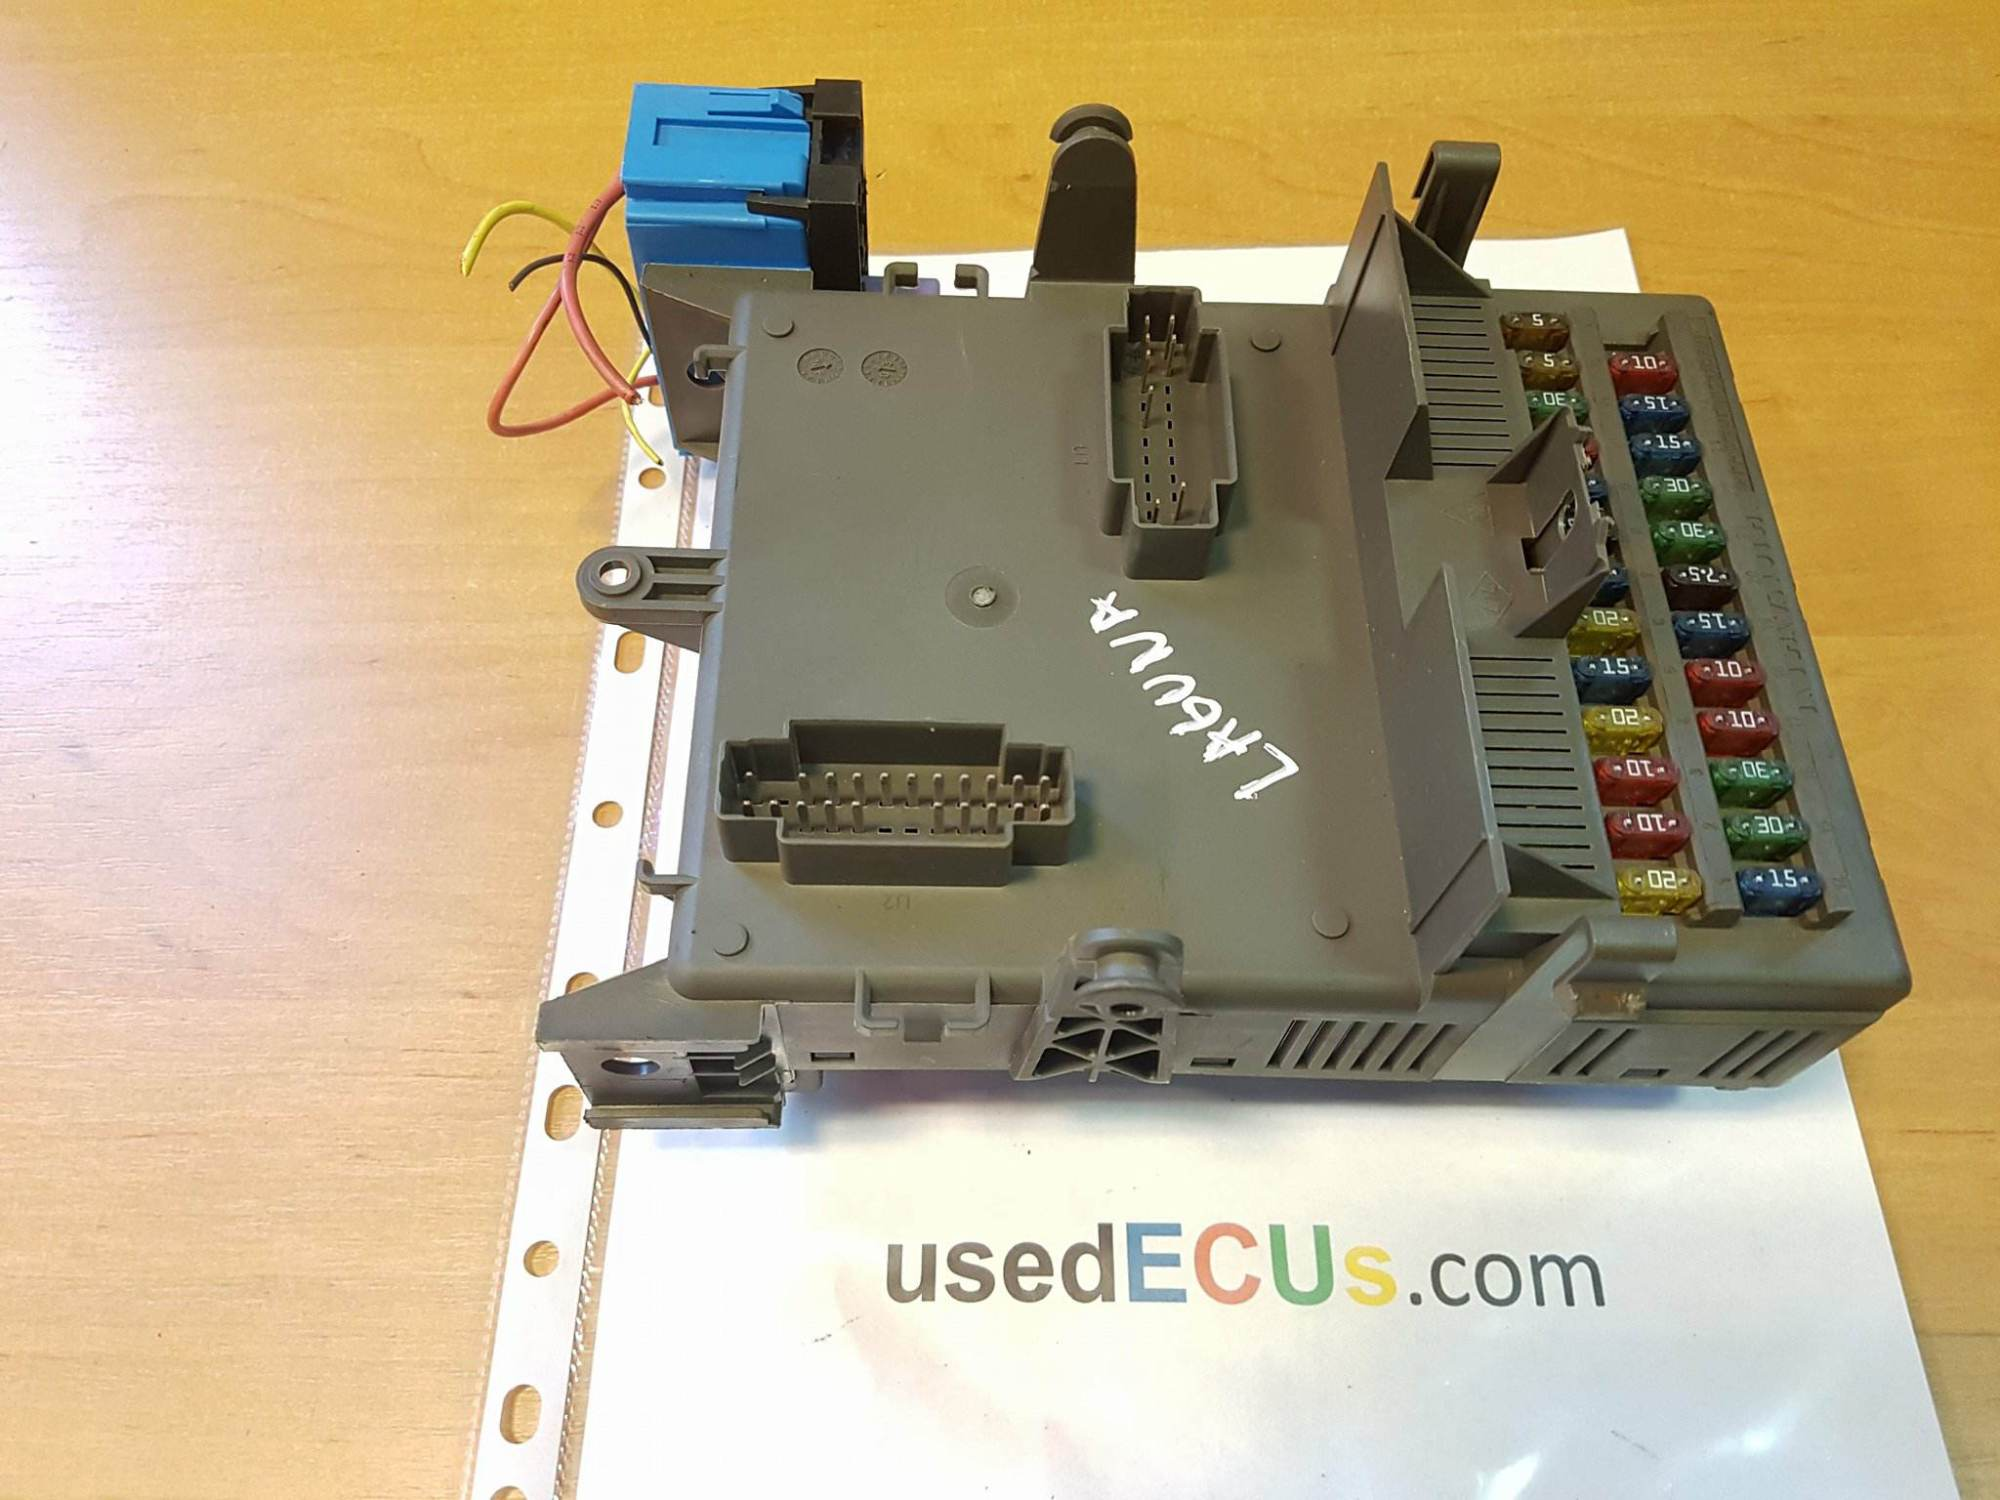 hight resolution of renault laguna espace 1 9 dci interior fuse box 8200004201e 518832001 article 8200004201e 518832001